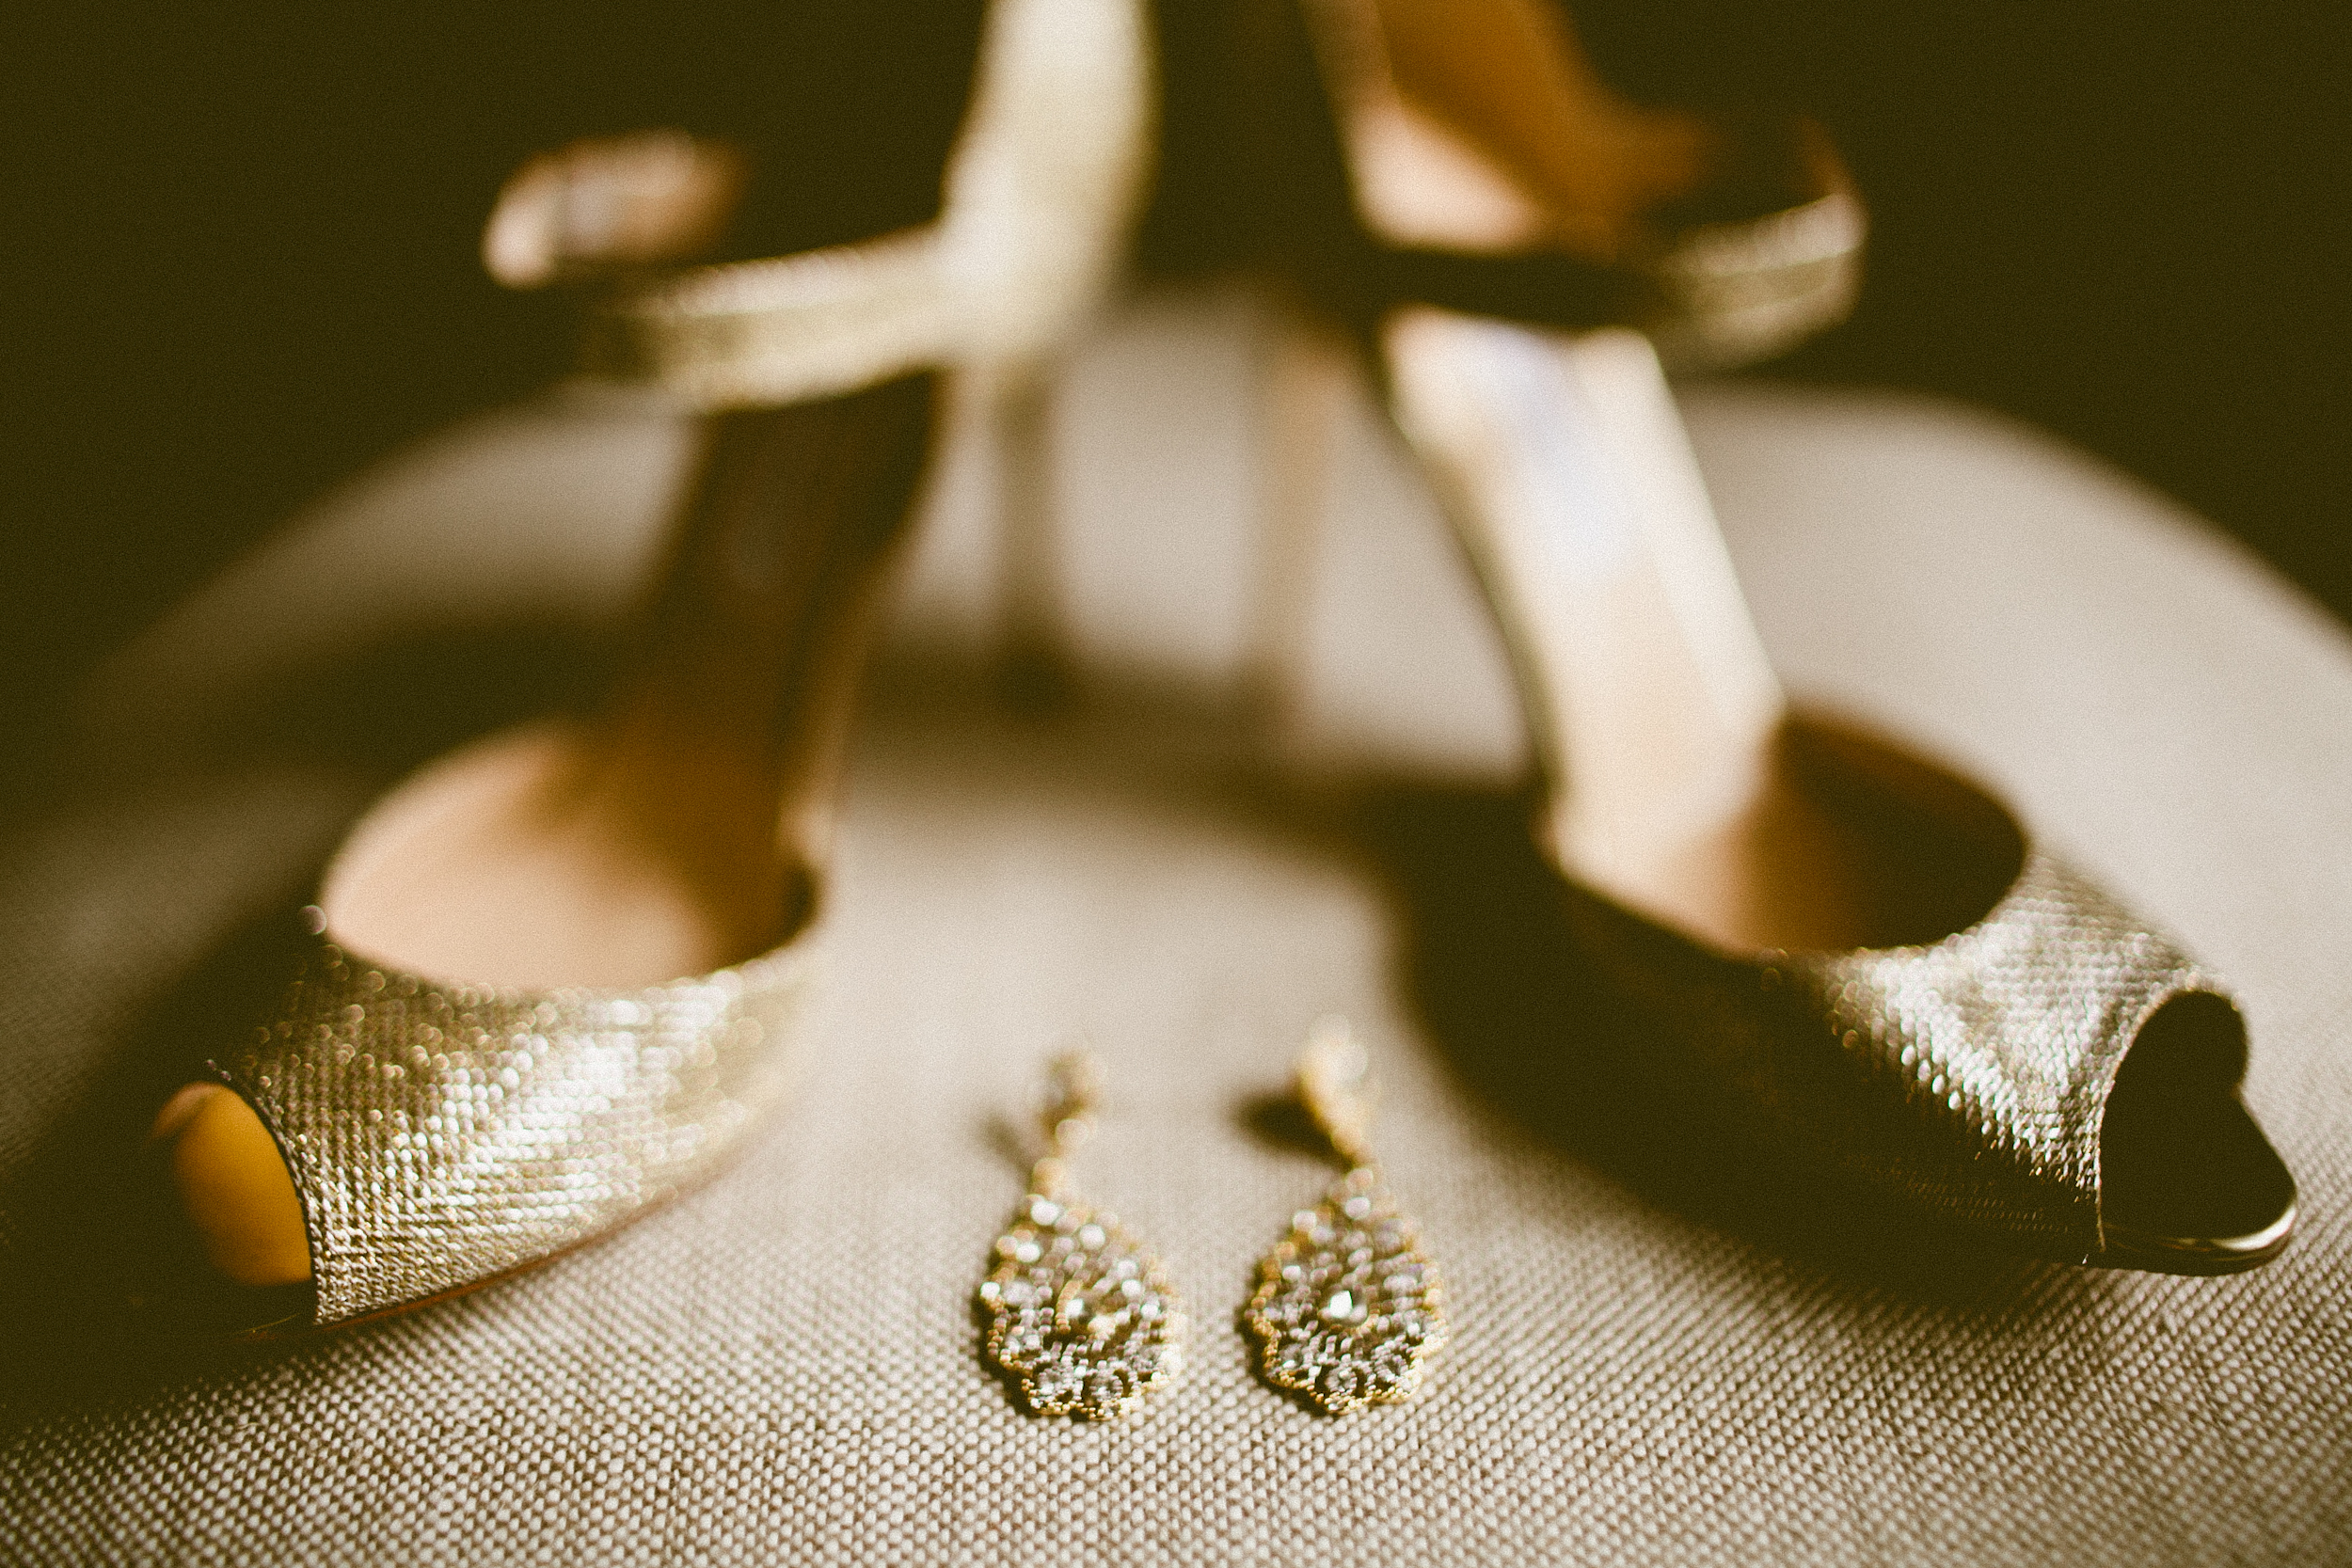 DeLille Cellars wedding in Woodinville | Jimmy Choo wedding shoes with matching earrings |Perfectly Posh Events | Seattle Wedding Planner | Andria Lindquist Photography